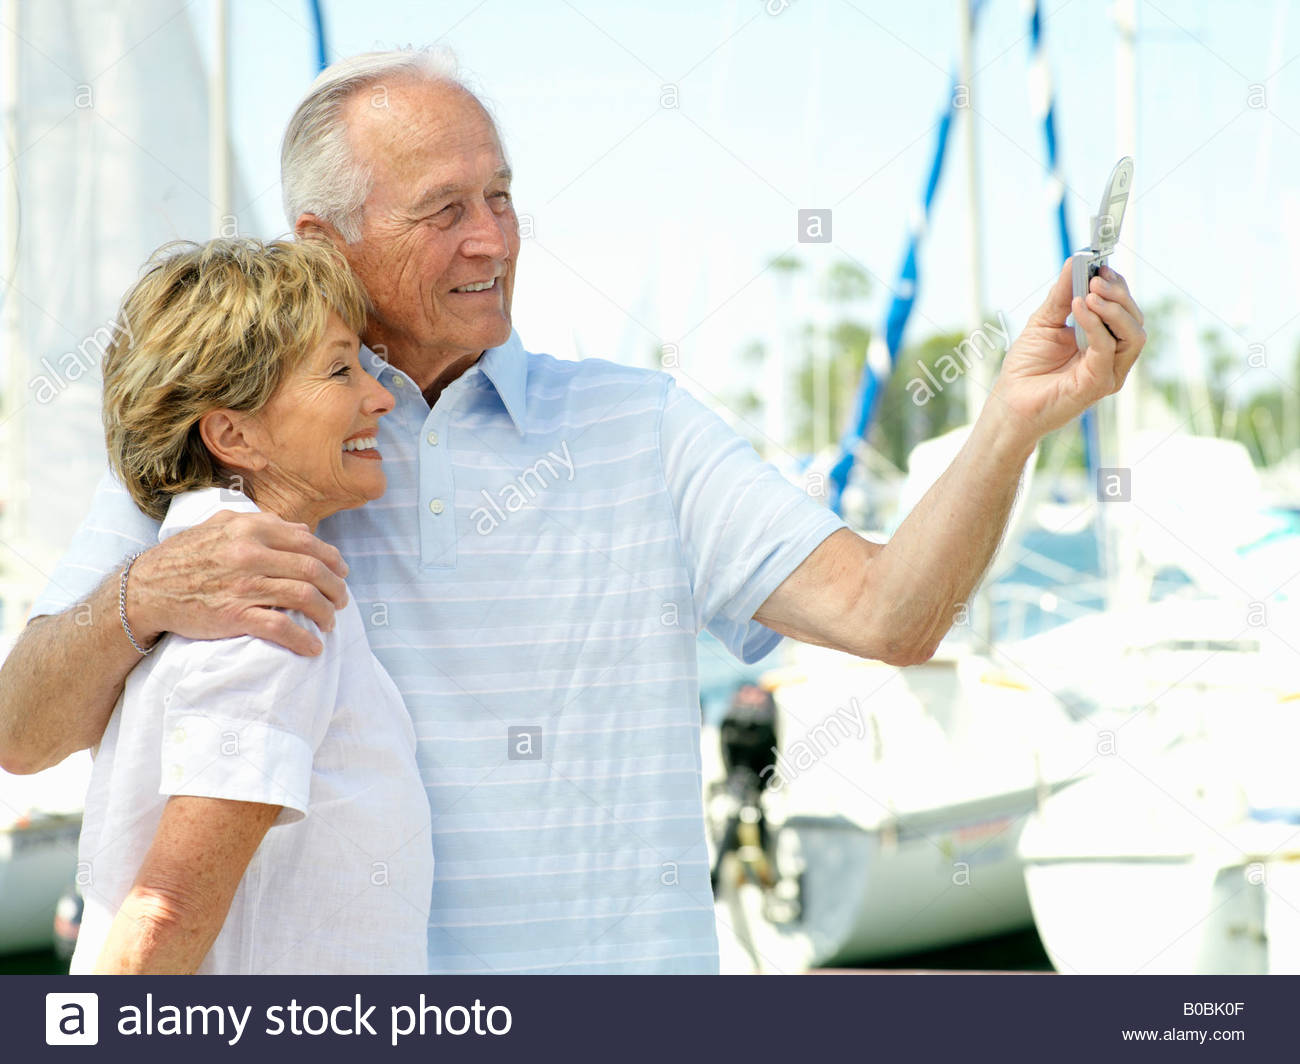 Senior couple arm in arm by boats, taking photograph of themselves, side view - Stock Photo